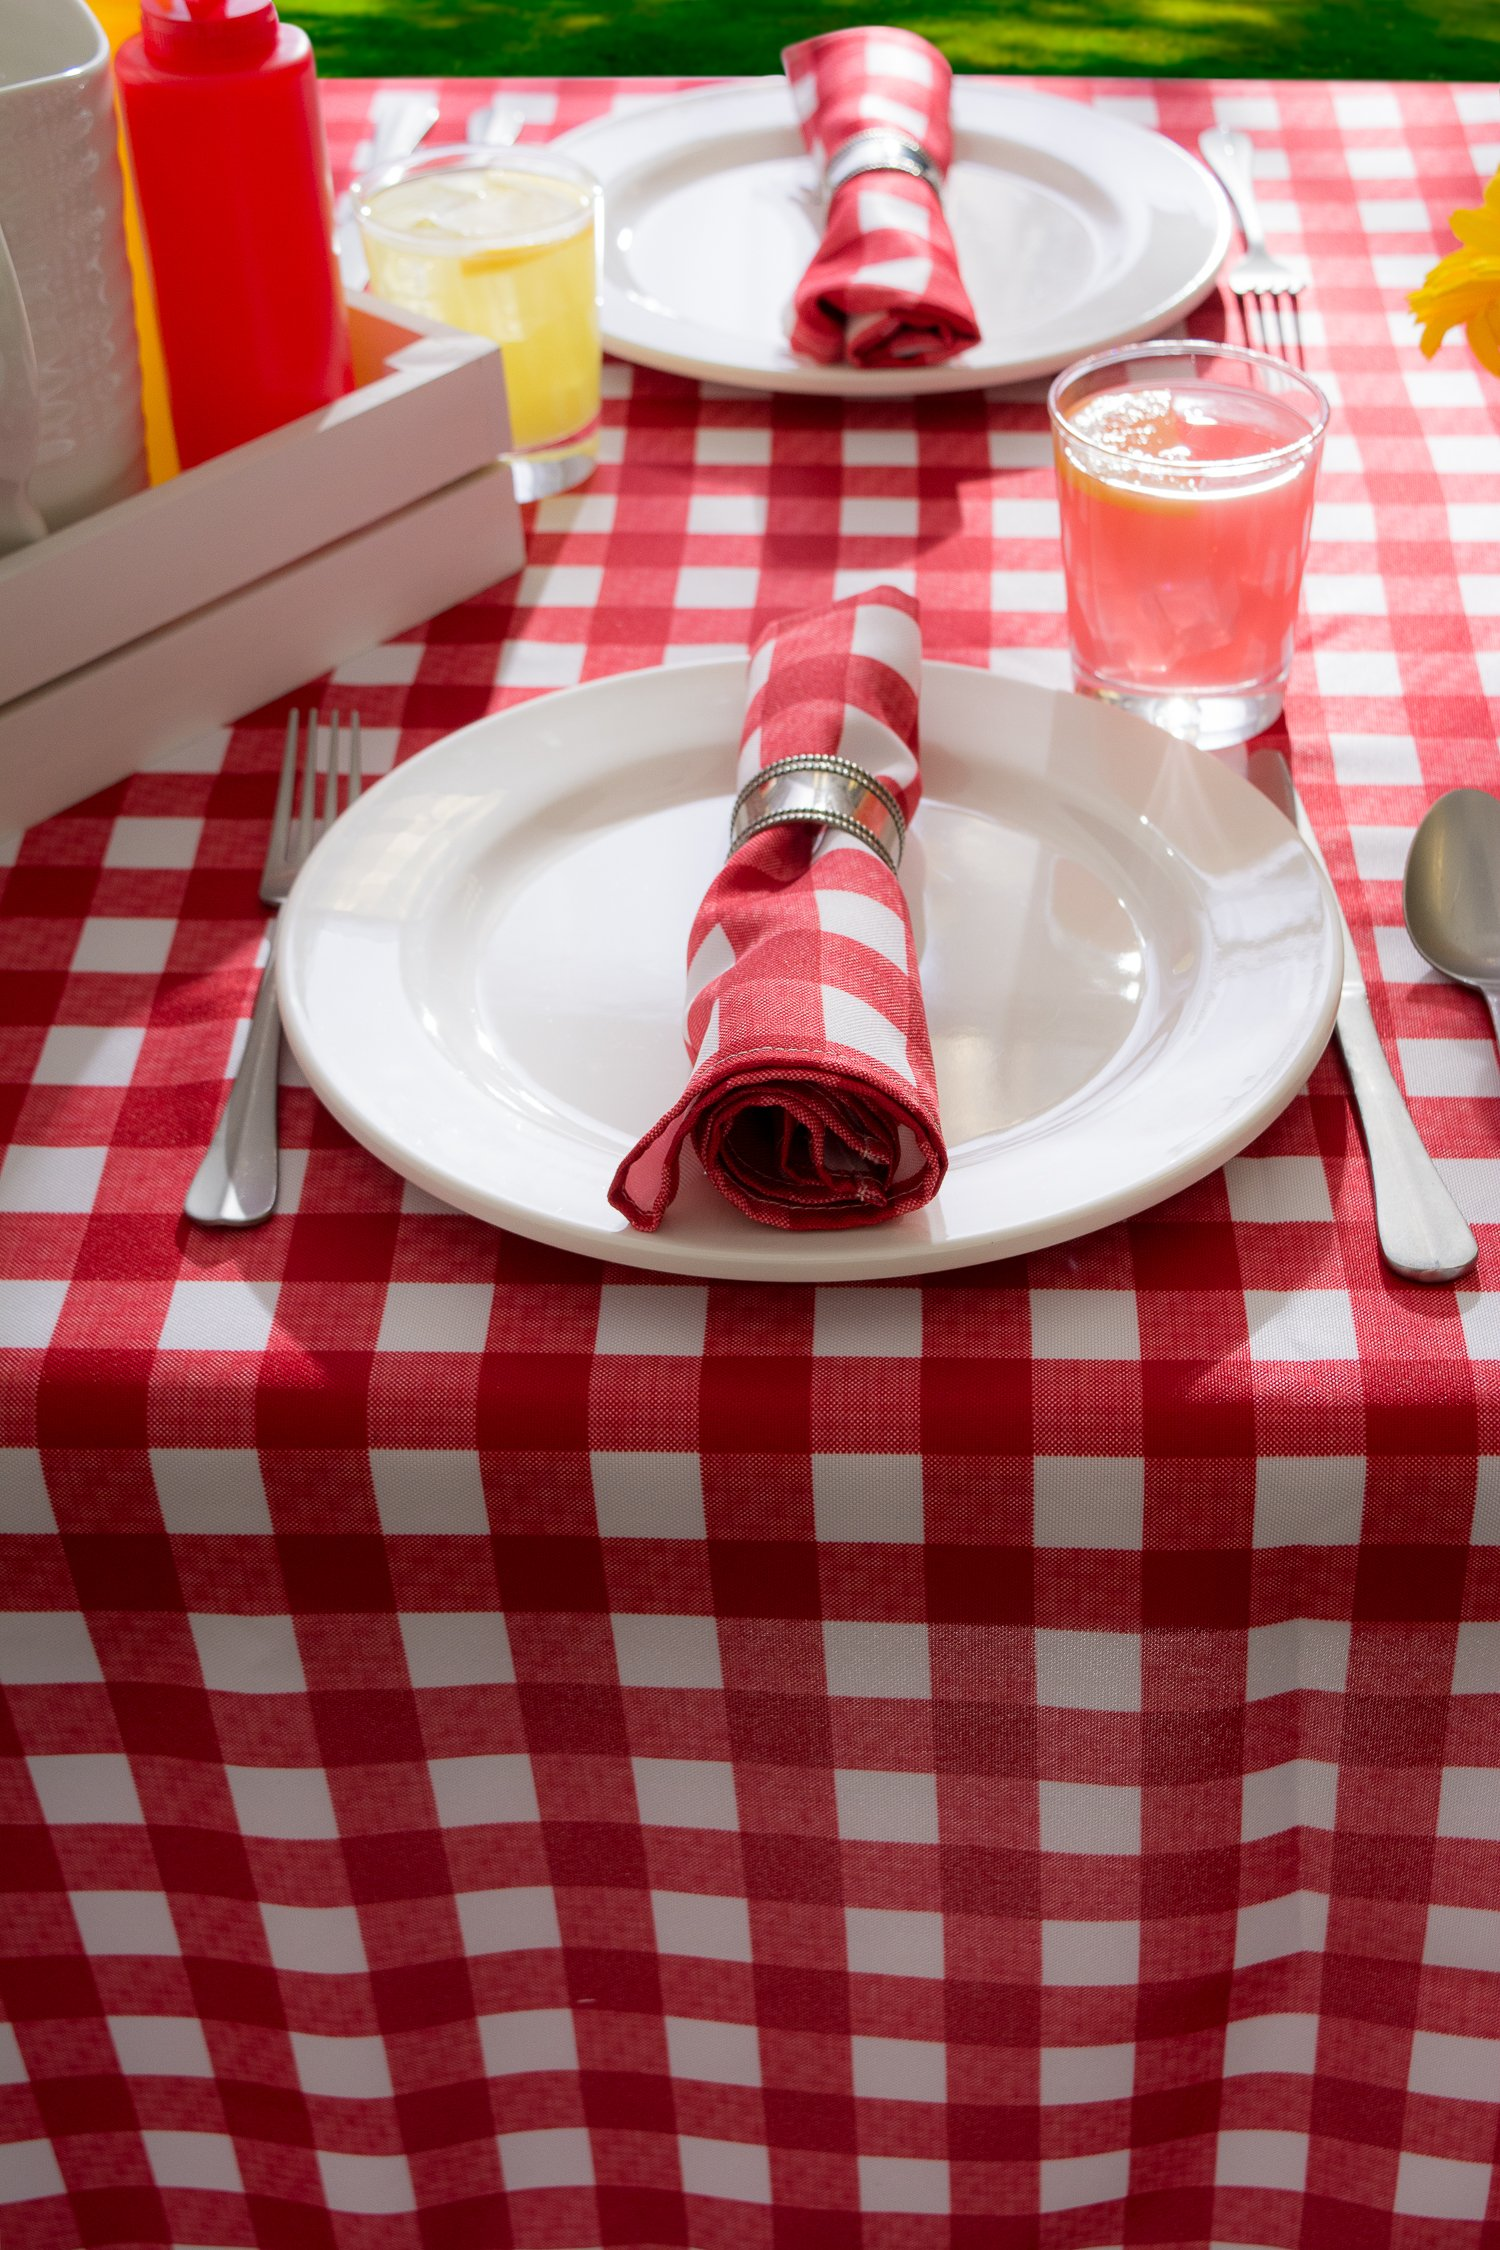 DII Spring & Summer Outdoor Tablecloth, Spill Proof and Waterproof with Zipper and Umbrella Hole, Host Backyard Parties, BBQs, & Family Gatherings - (60x120'' - Seats 10 to 12) Red Check by DII (Image #9)